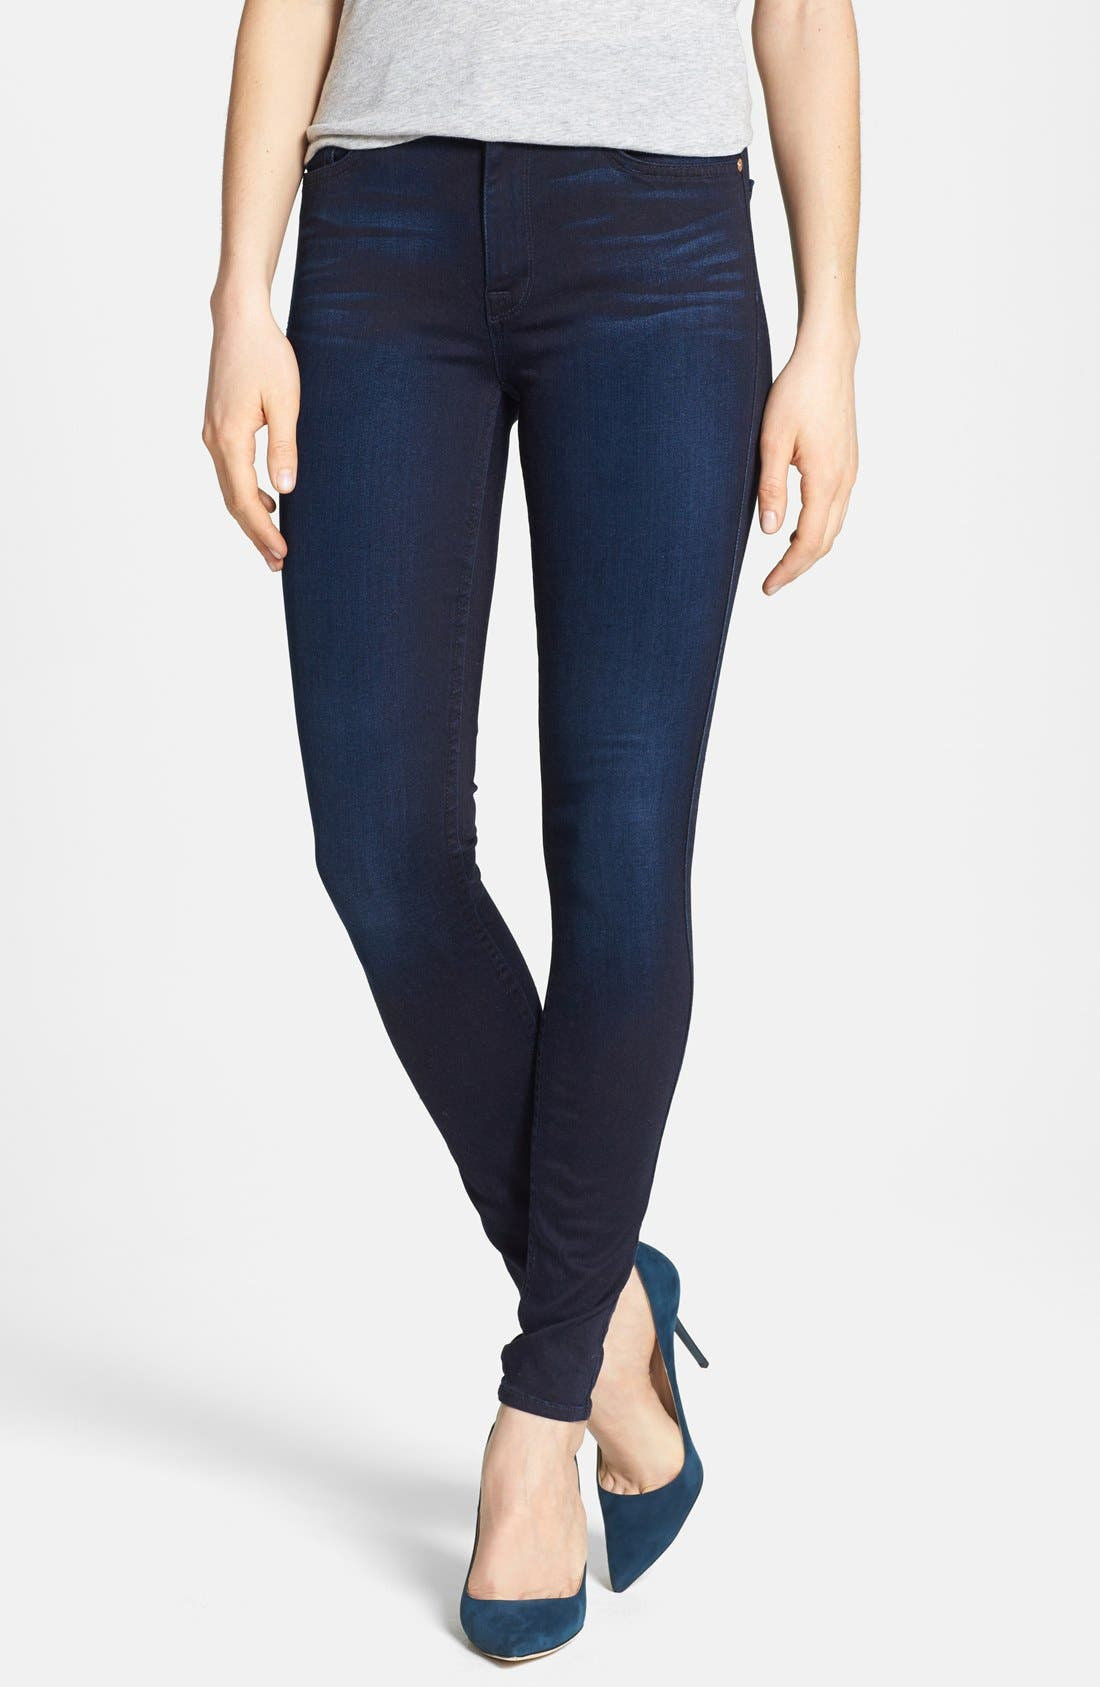 Main Image - 7 For All Mankind® High Rise Skinny Jeans (Blue Black Sateen)